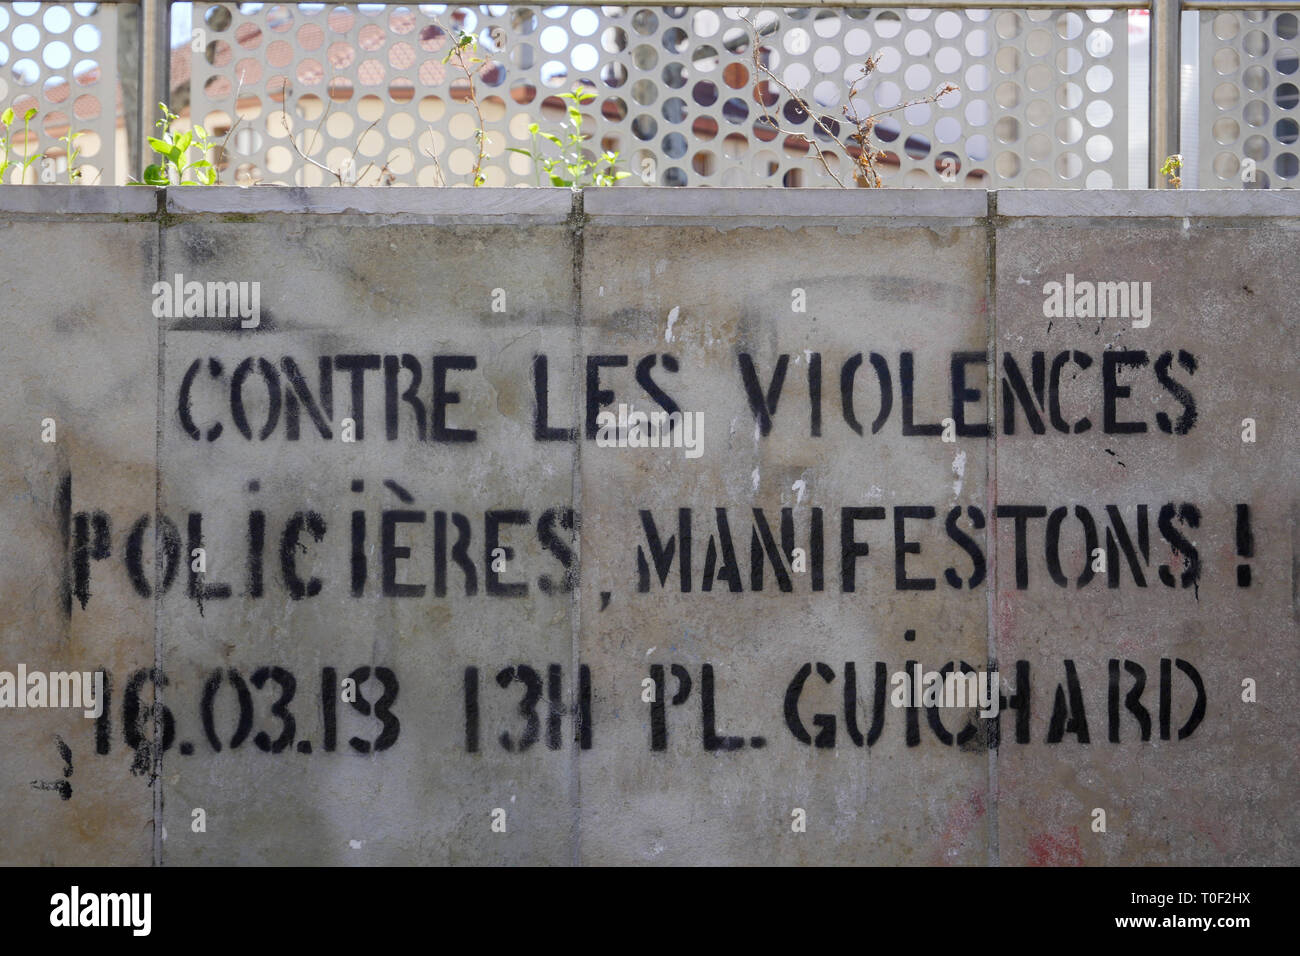 A Graffiti protest against violences made by police officers, Lyon, France - Stock Image